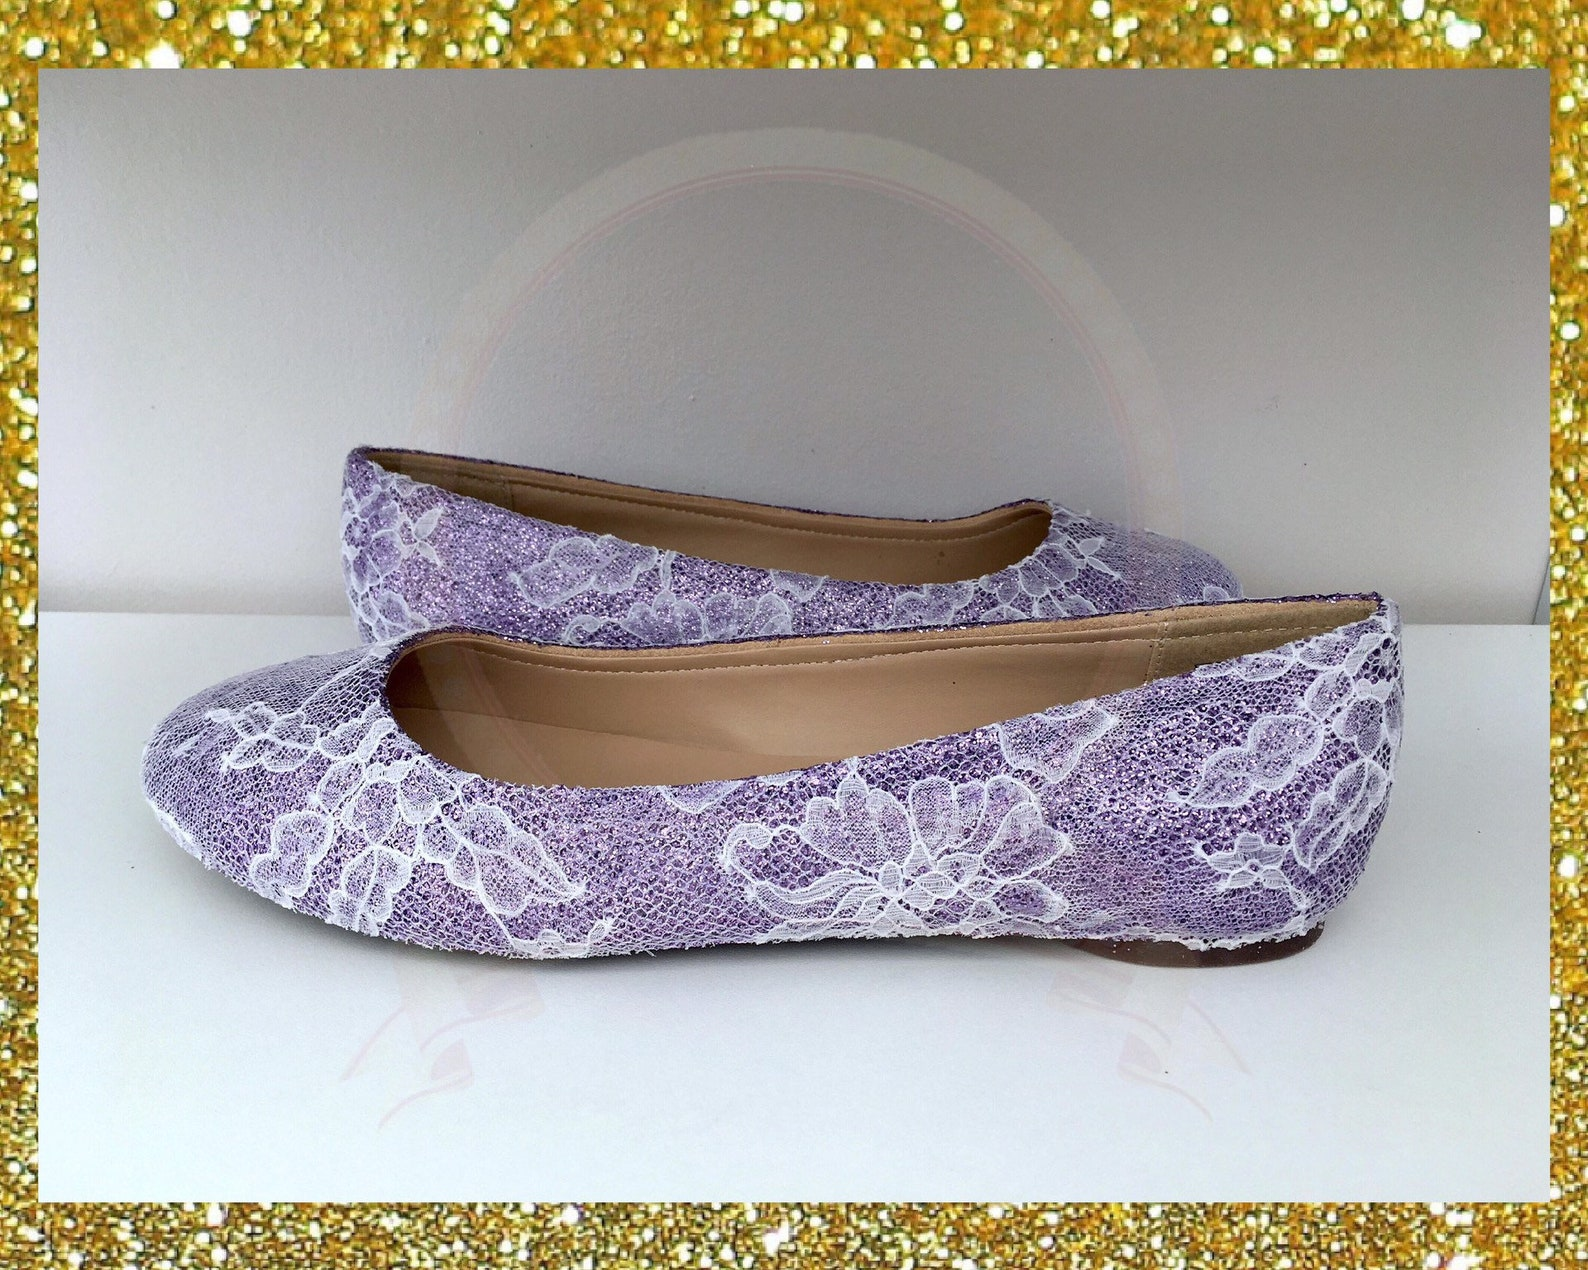 lace wedding shoes, flat wedding shoes, lilac wedding shoes, lace flat shoes, custom wedding shoes, glitter shoes, ballet flats,